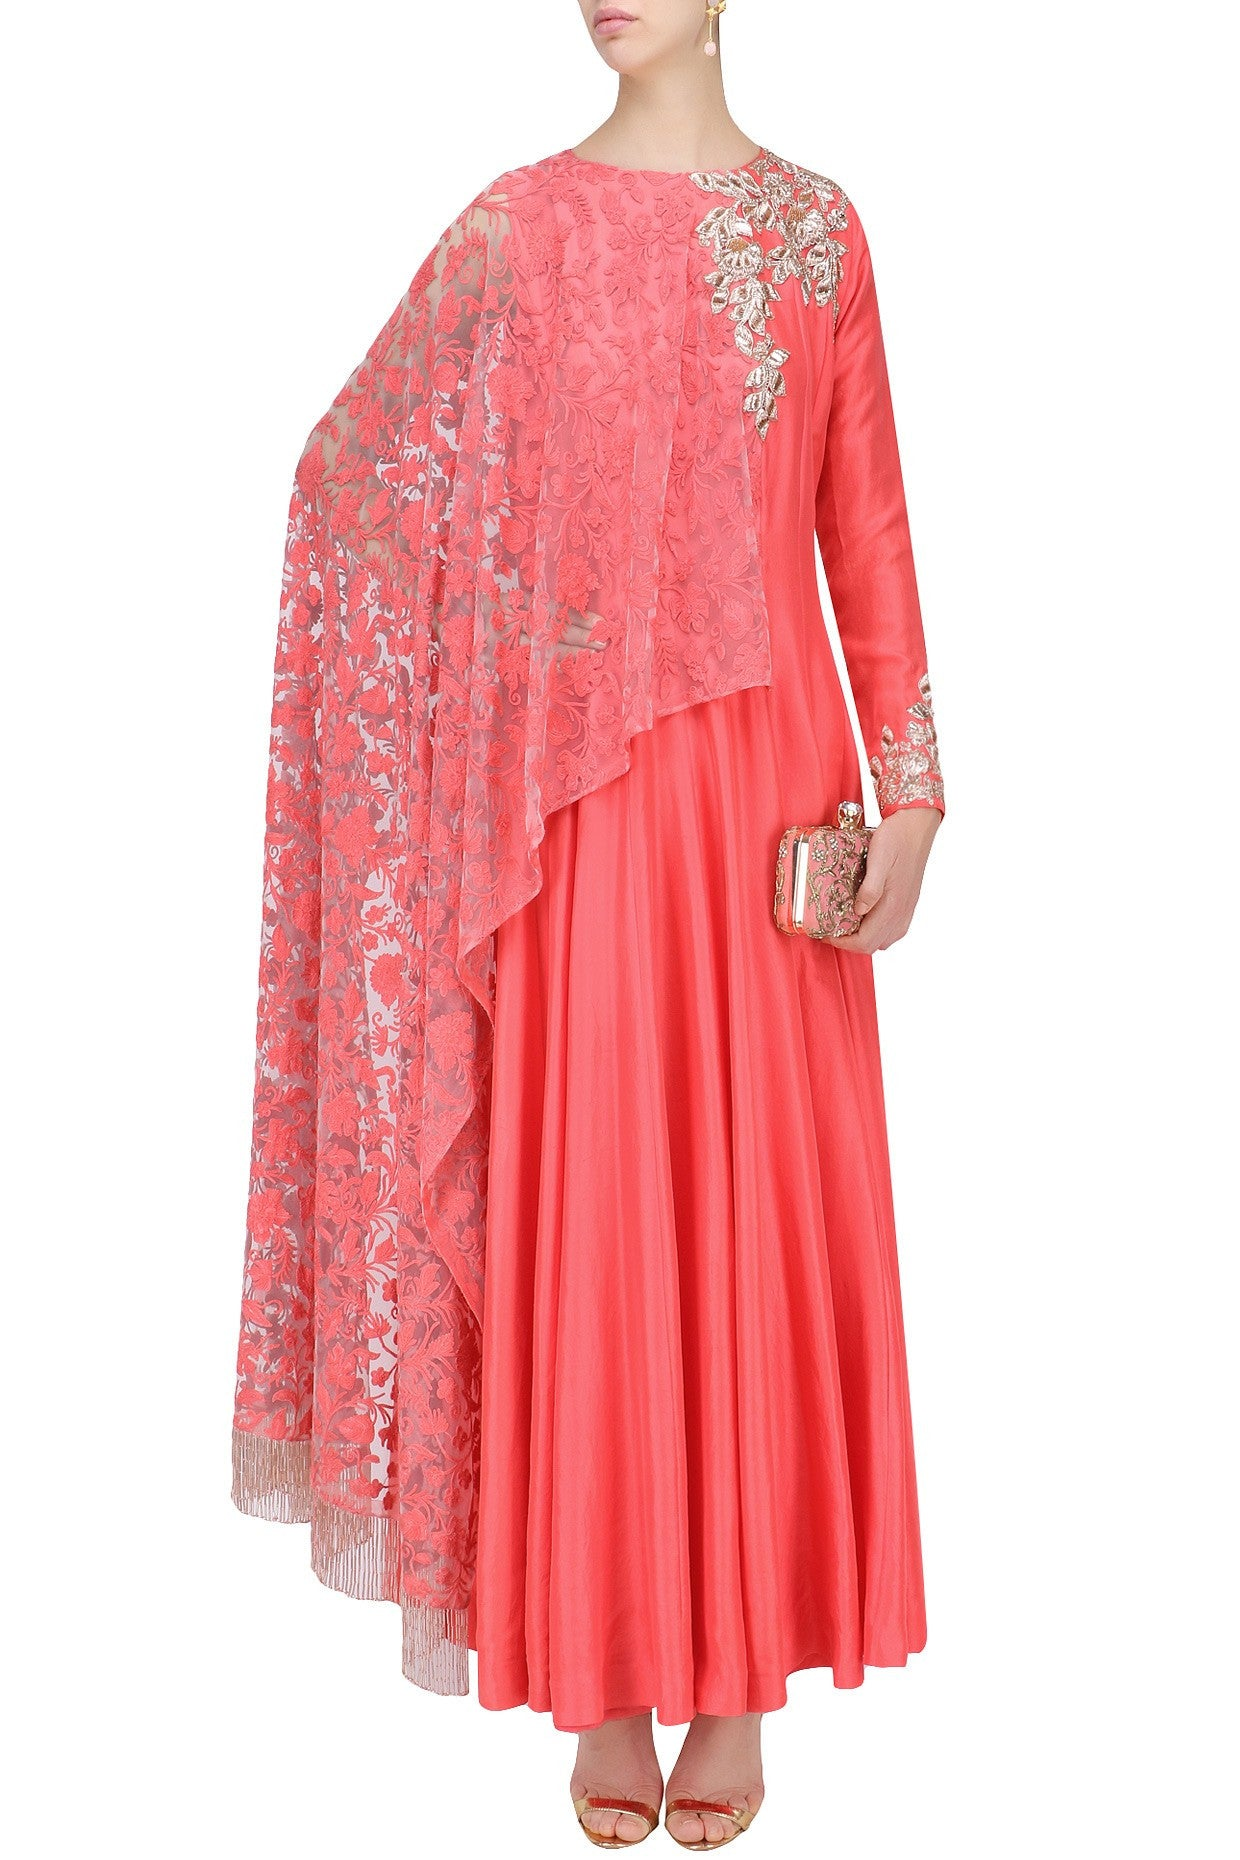 Coral Color Anarkali Kurta Set by Panache Haute Couture